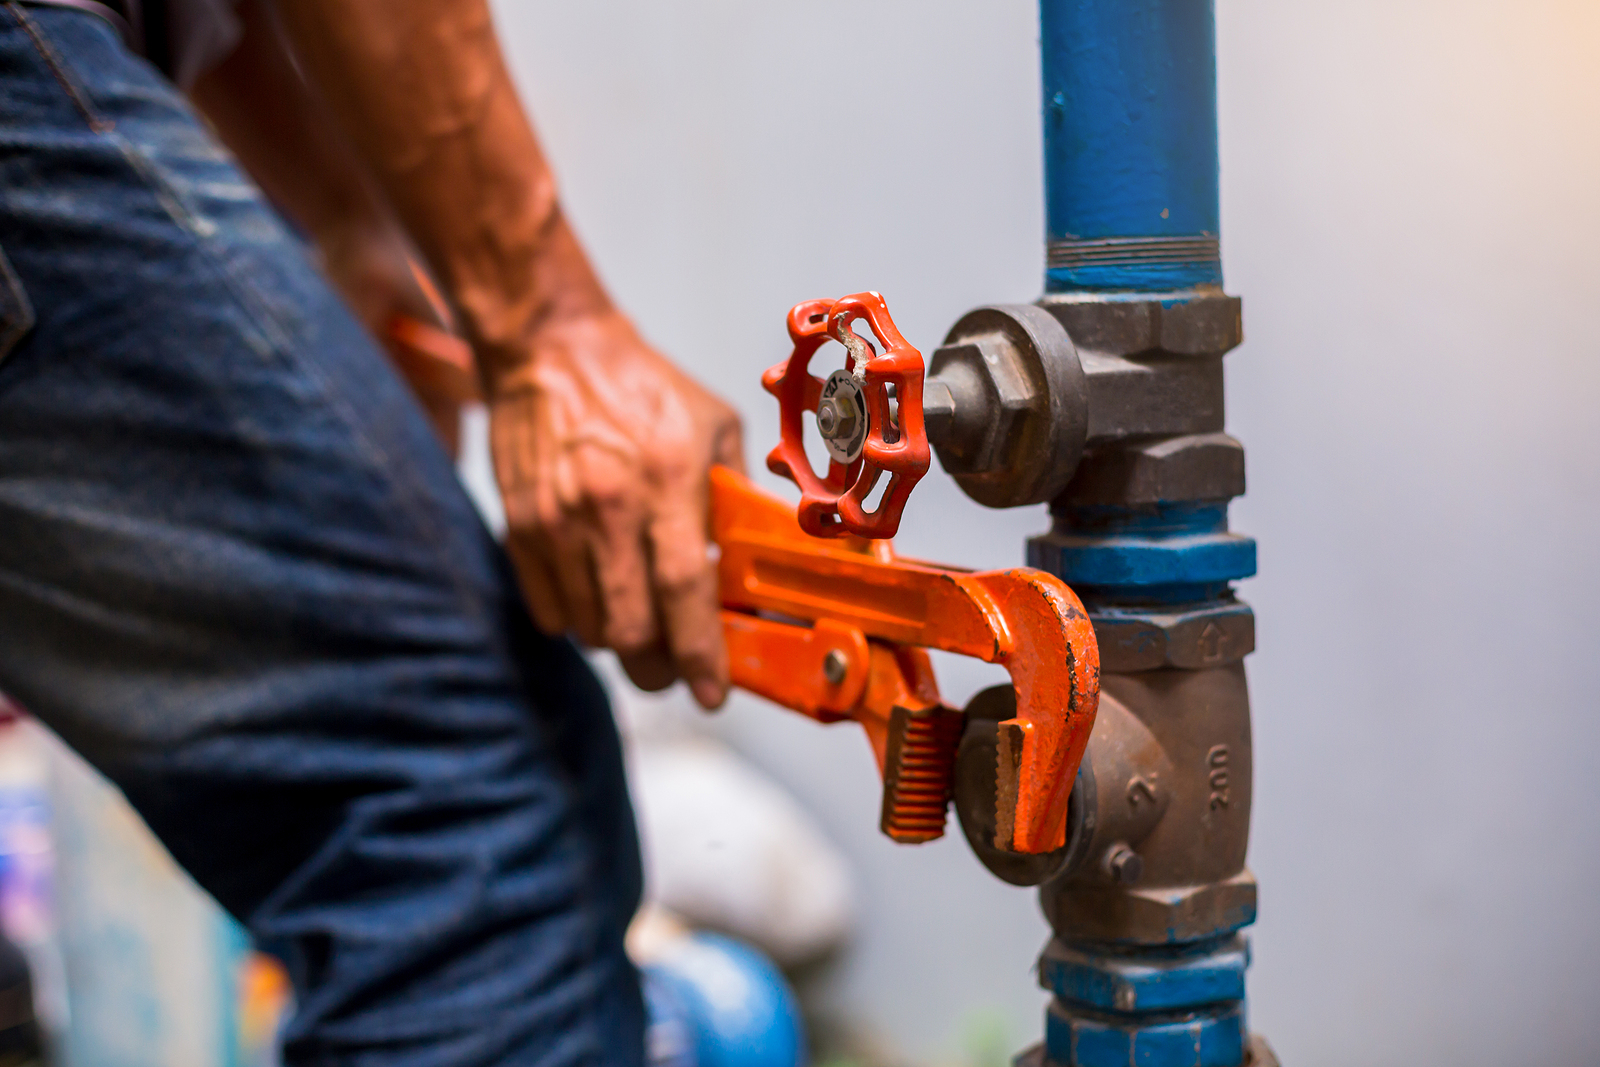 Plumber using a wrench to repair and remove the water supply pipe and valve.